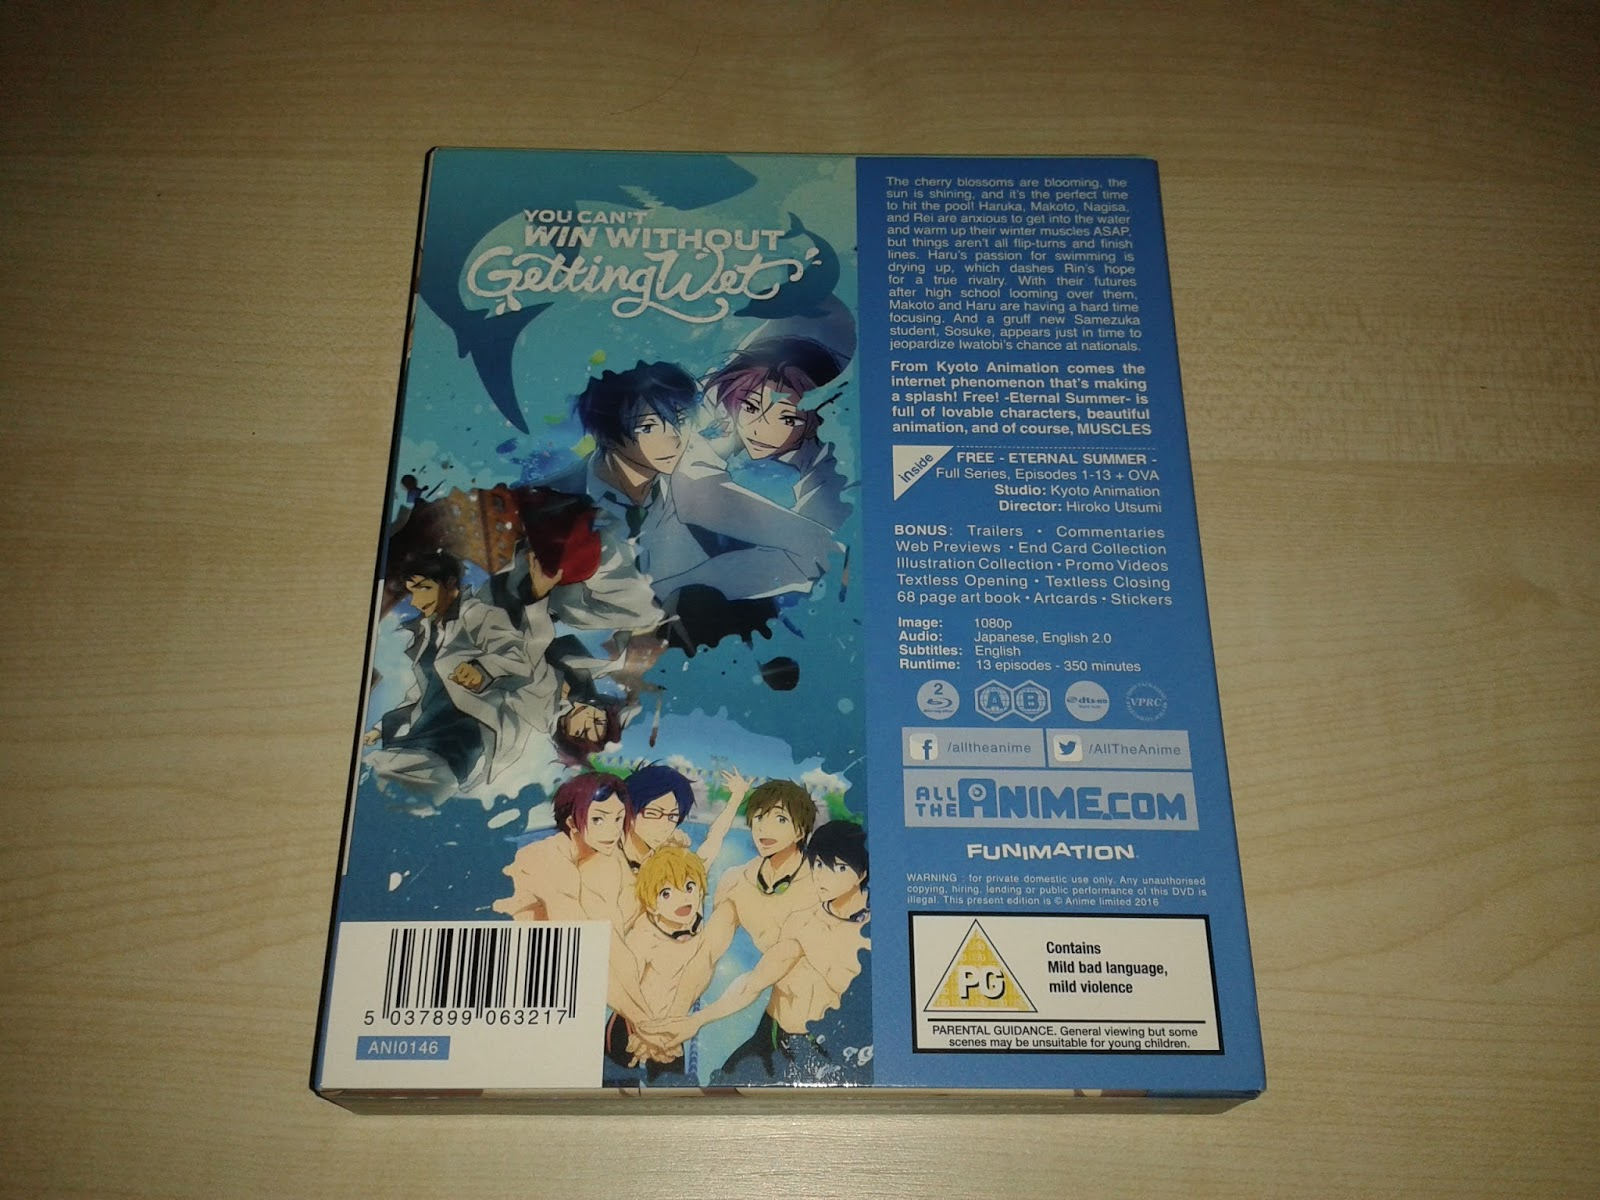 The Normanic Vault: Unboxing [UK]: Free! Eternal Summer - Complete ...